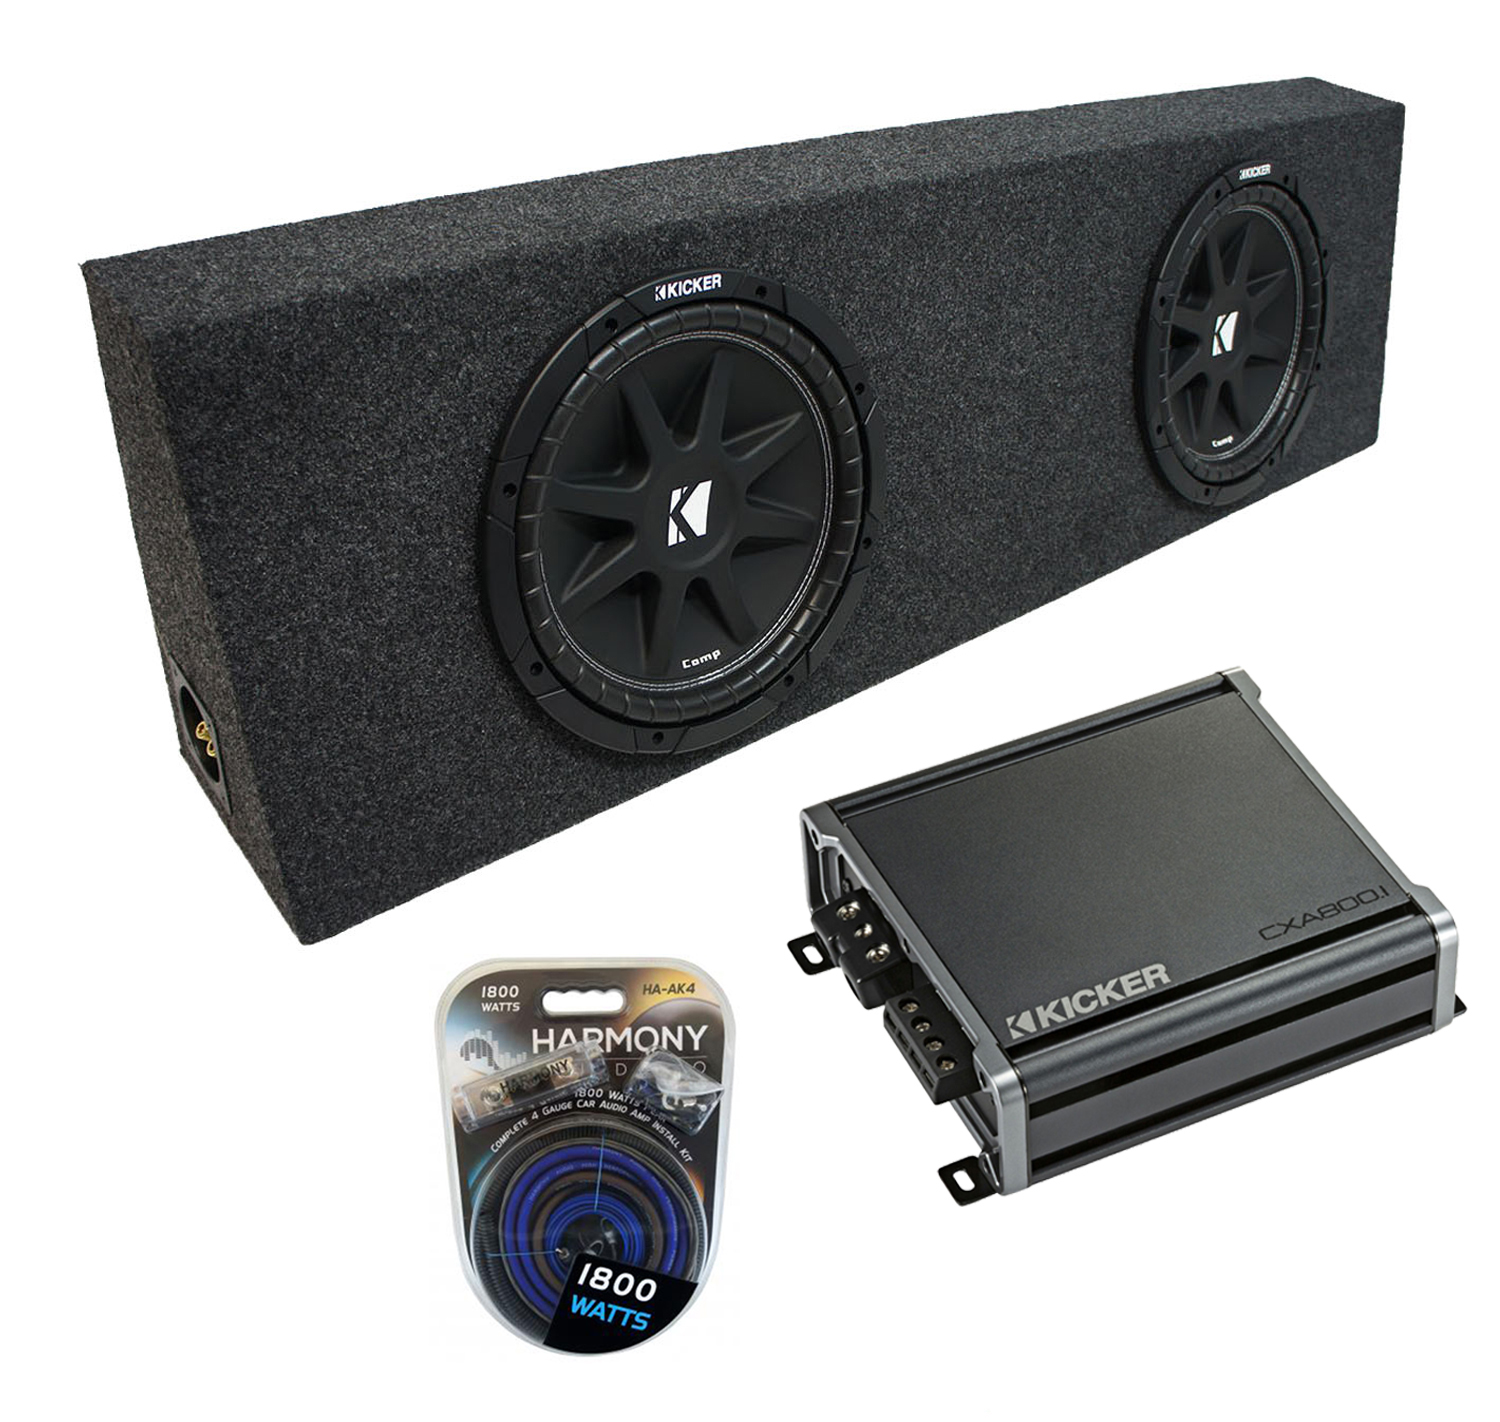 "Universal Regular Standard Cab Truck Kicker Comp C12 Dual 12"" Sub Box Enclosure & CX600.1 Amp"